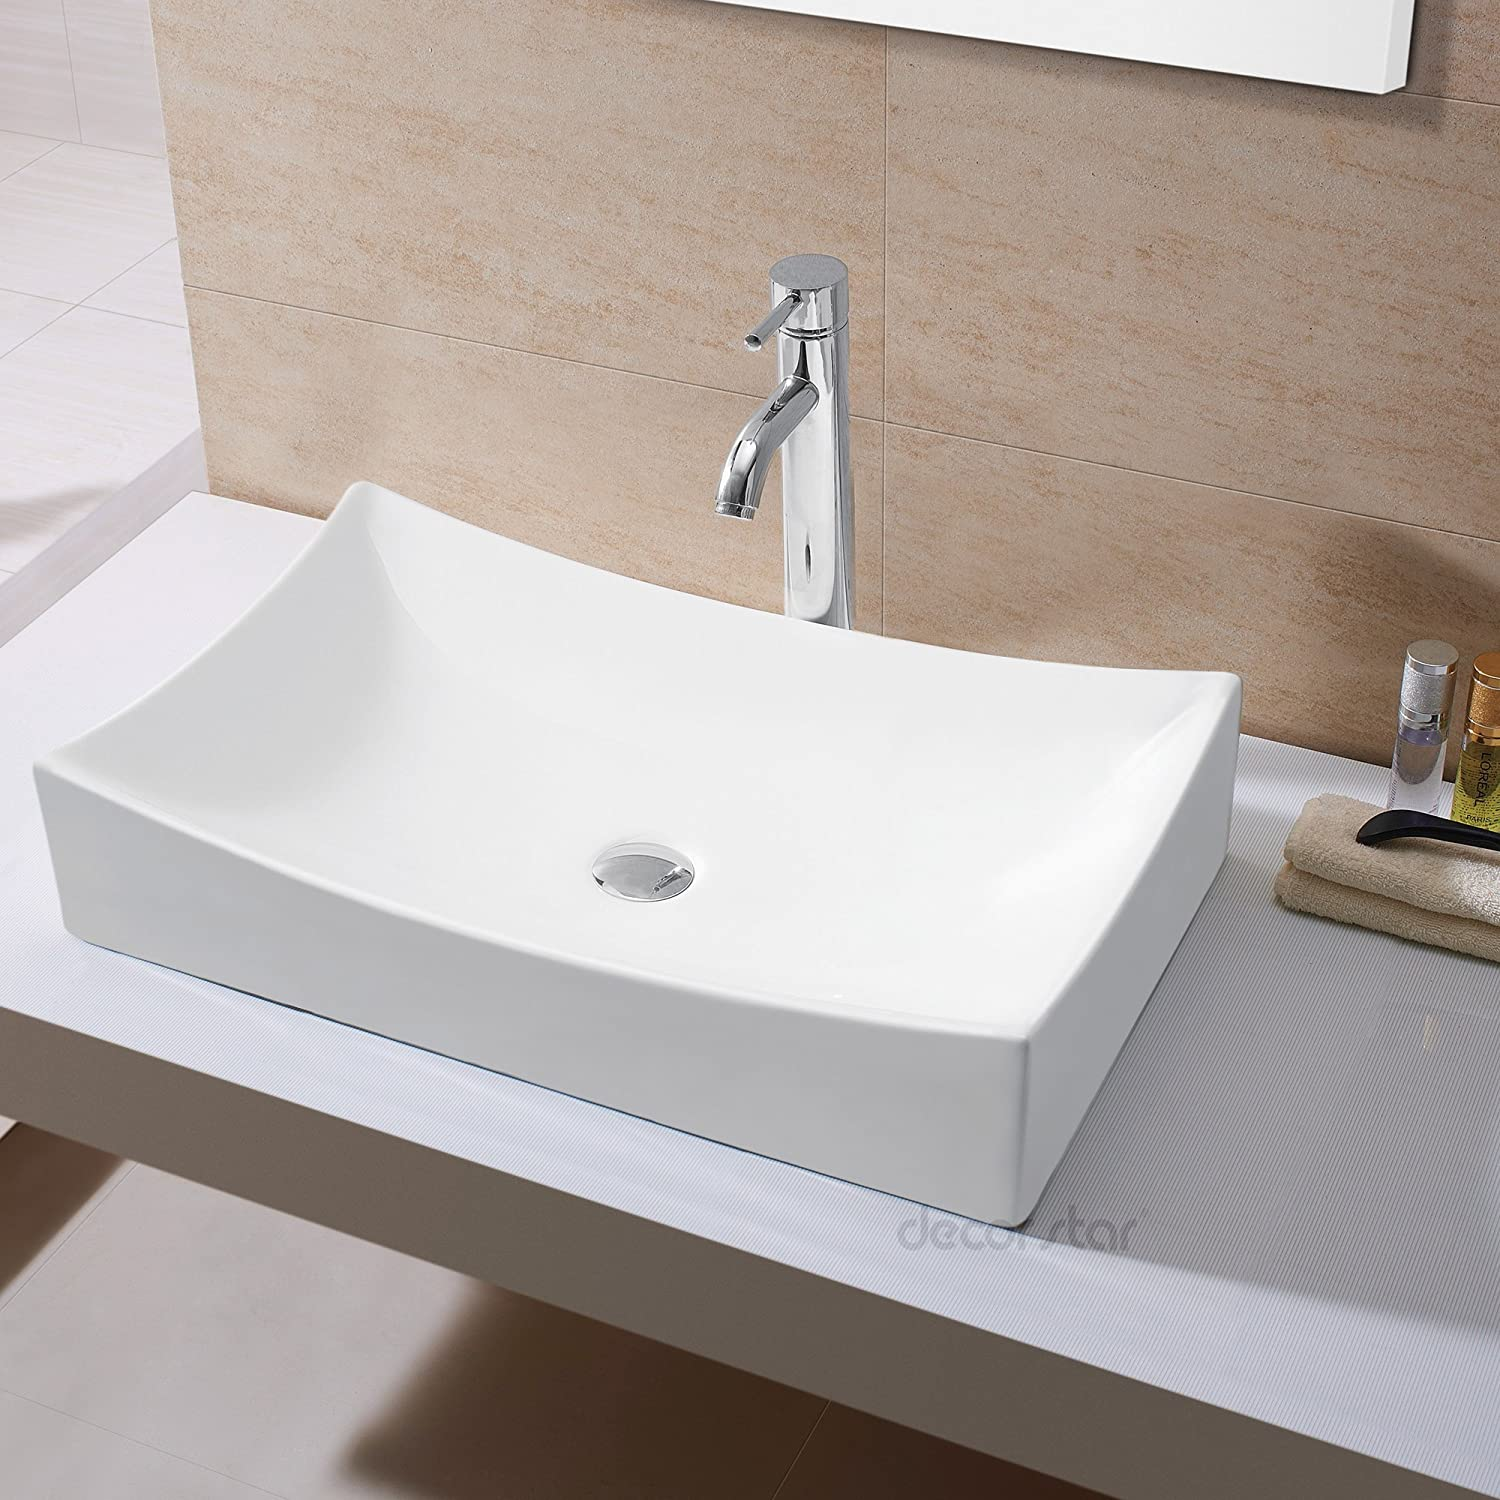 Merveilleux Decor Star CB 001 Bathroom Porcelain Ceramic Vessel Vanity Sink Art Basin      Amazon.com